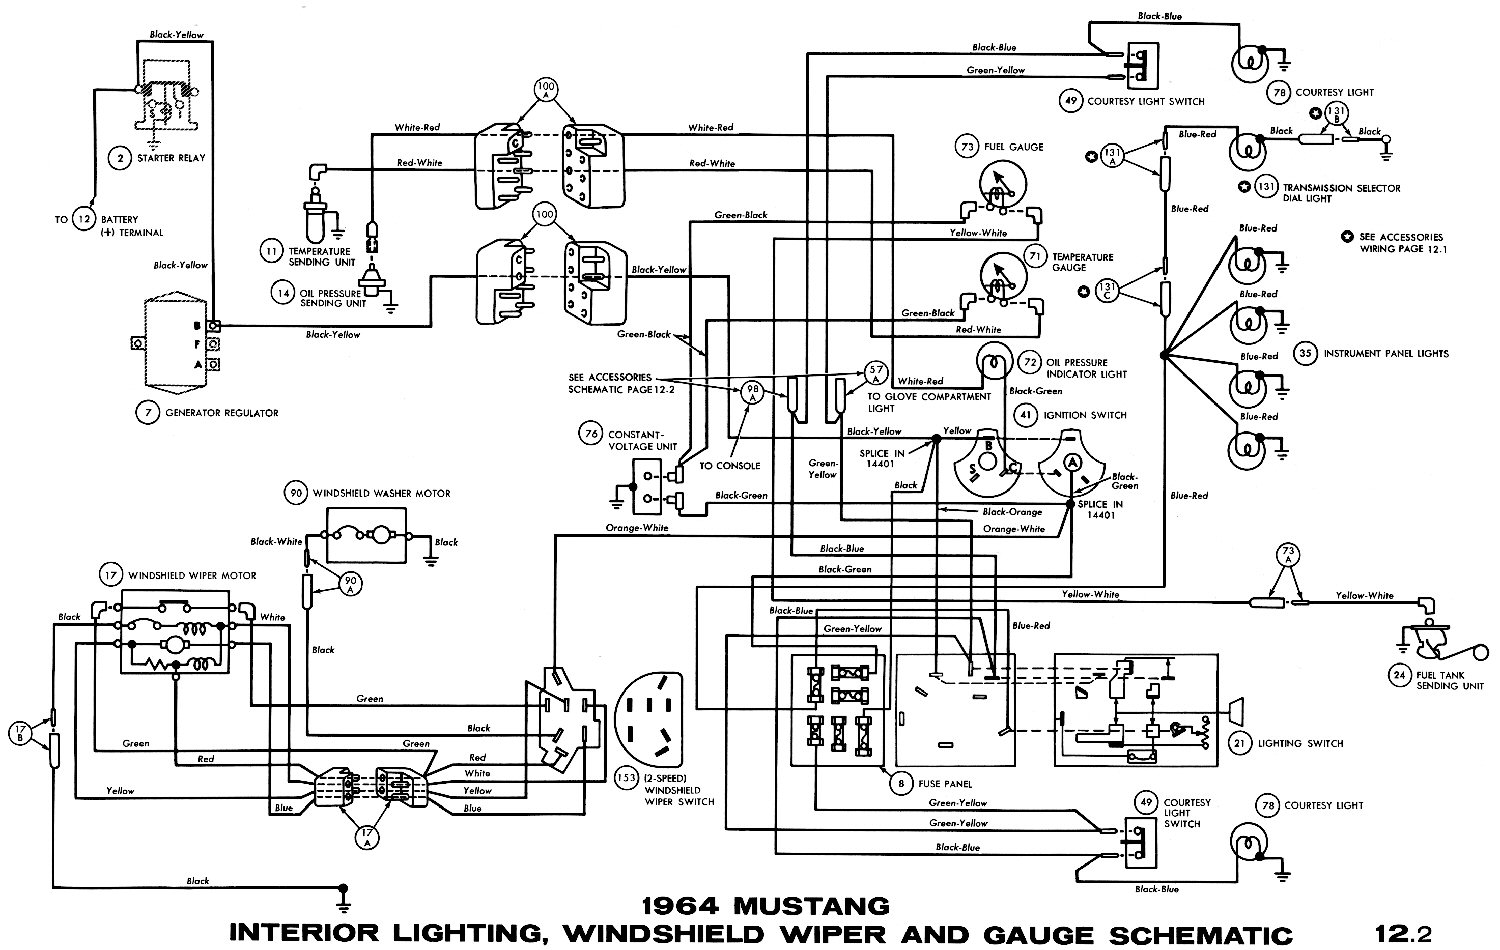 1964k 1964 mustang wiring diagrams average joe restoration Ford 4600 Wiring Schematic at nearapp.co